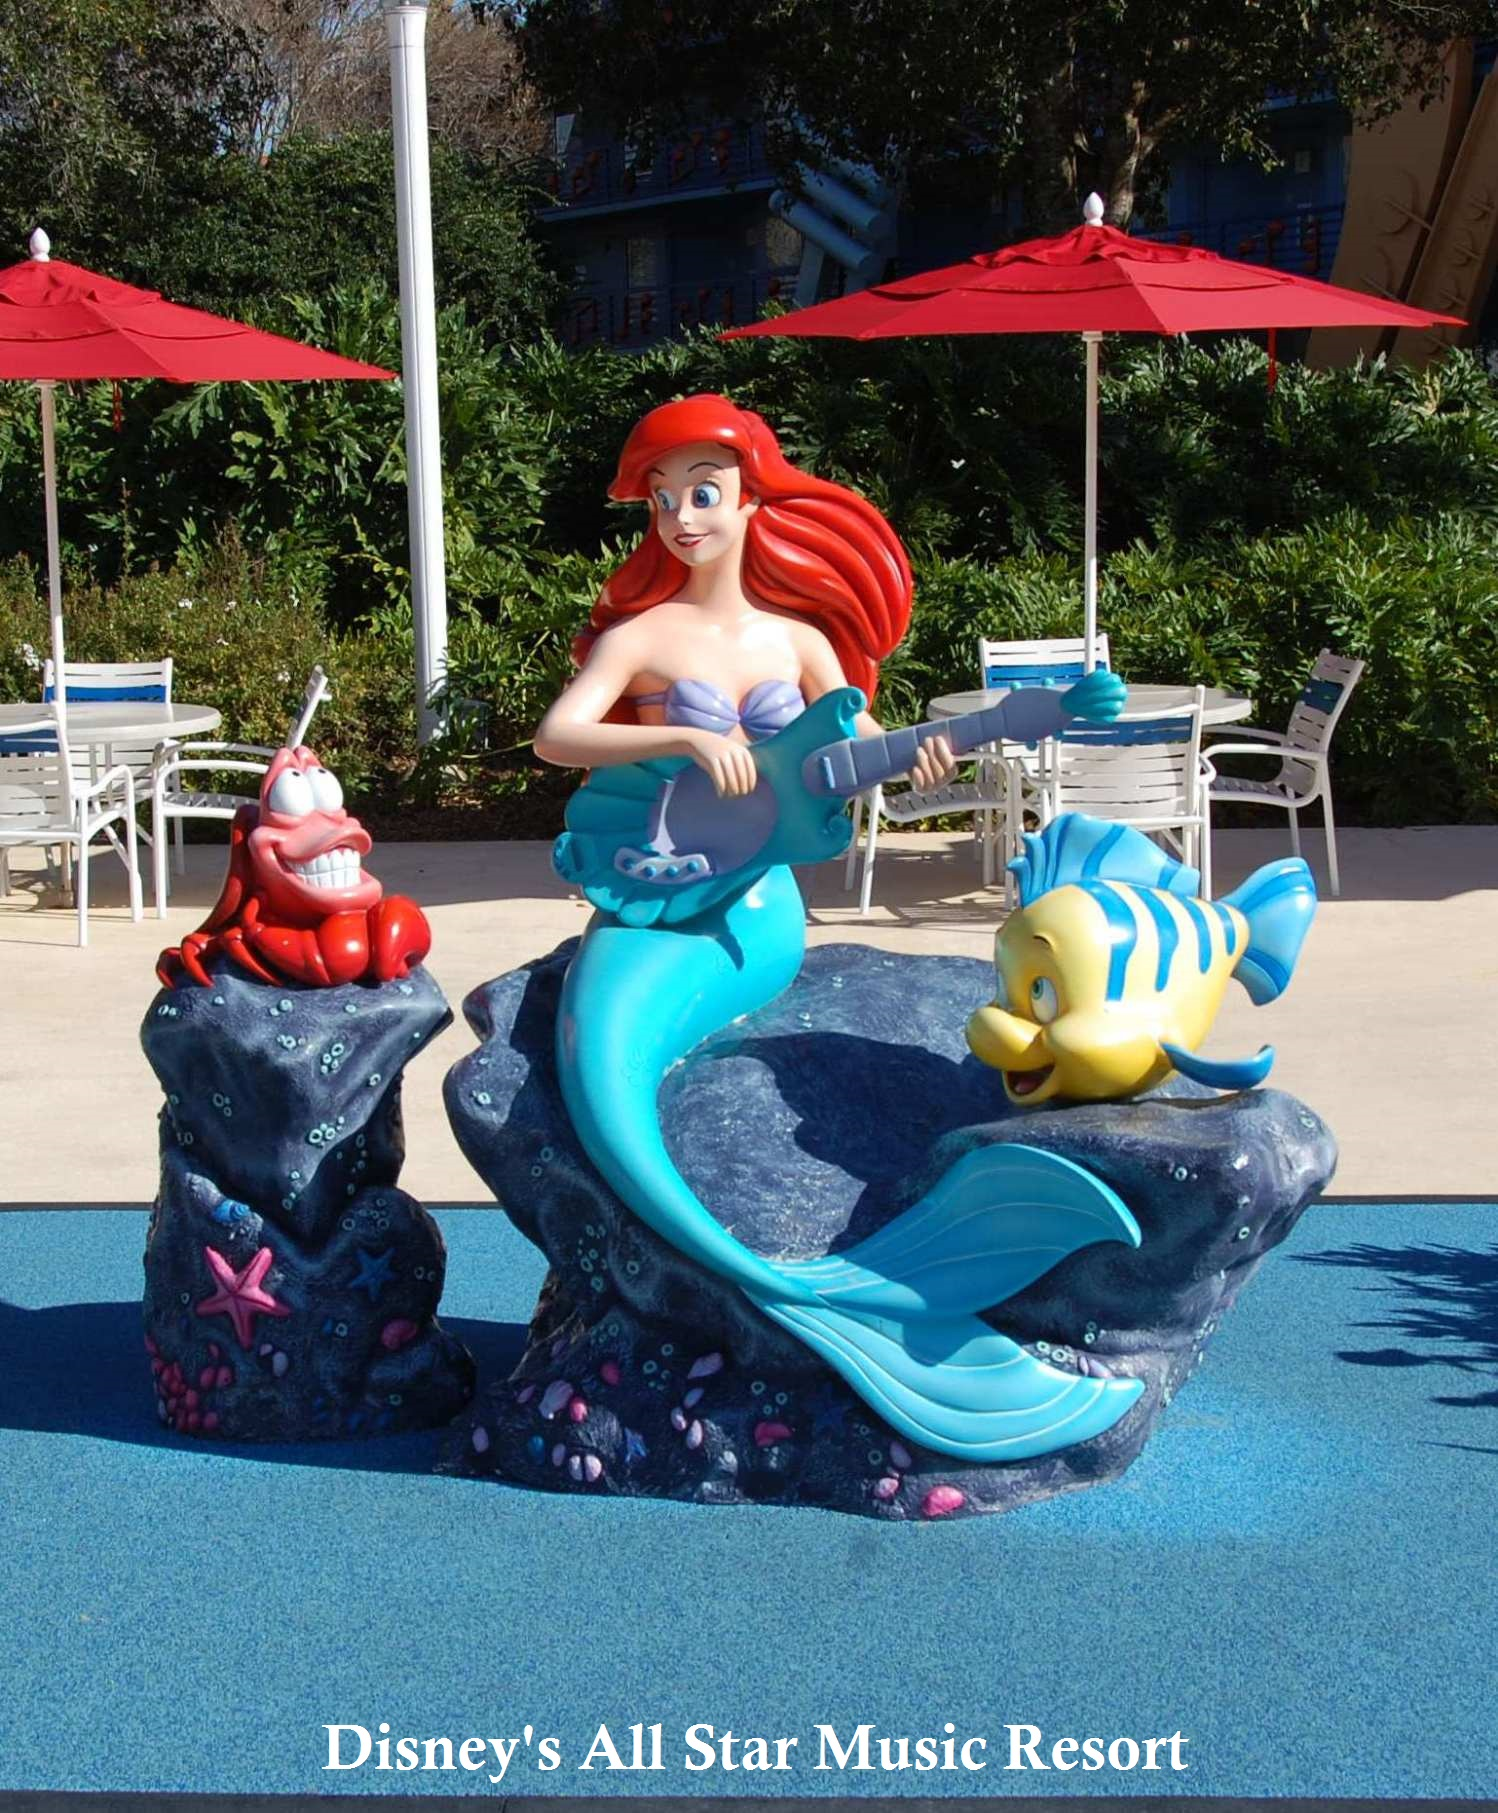 Little Mermaid Sculpture by the Piano Pool at Disney's All-Star Music Resort at Disney World